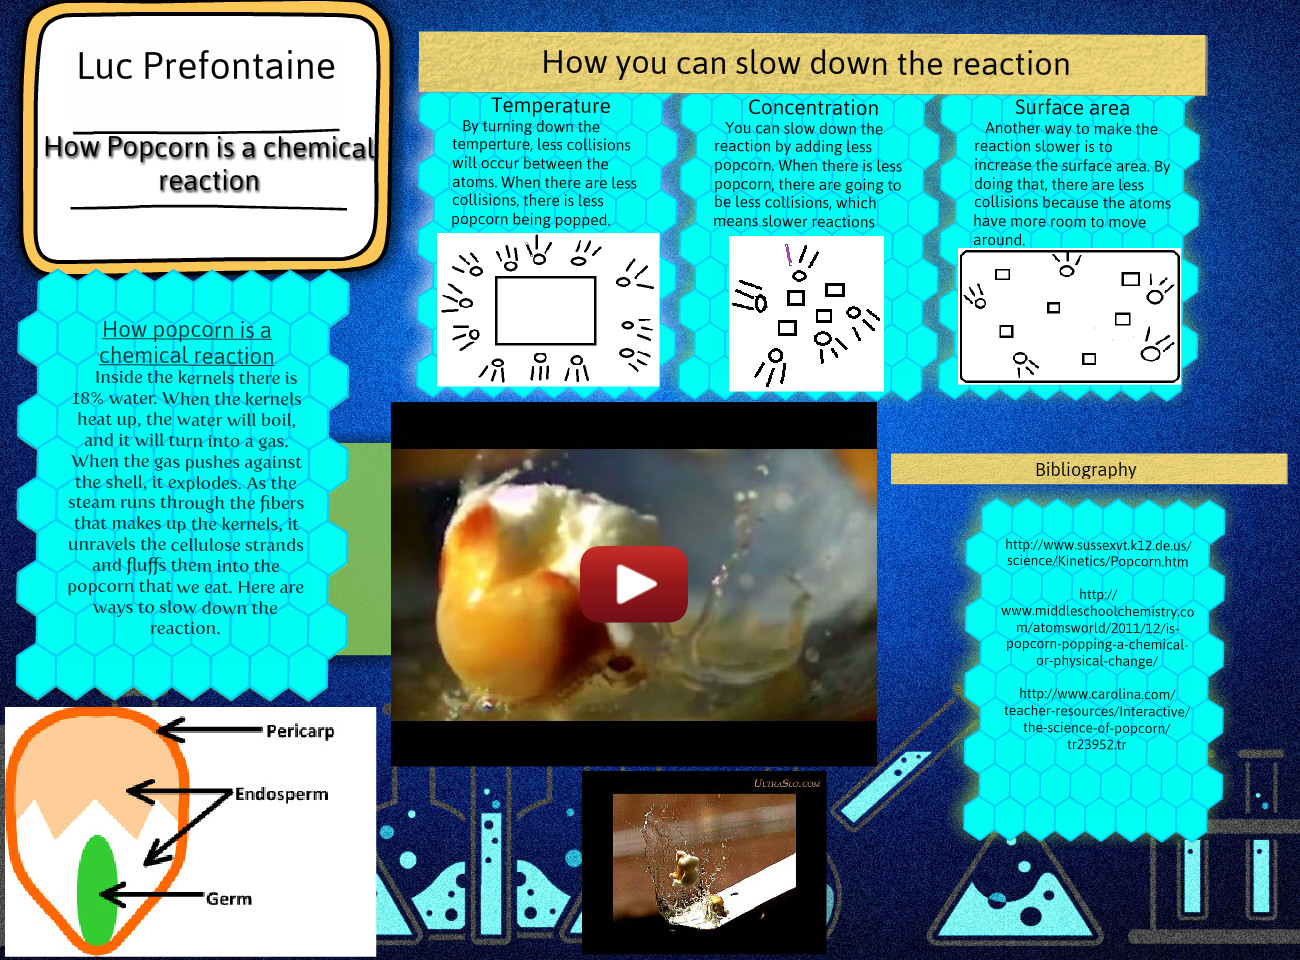 How popcorn is a chemical reaction